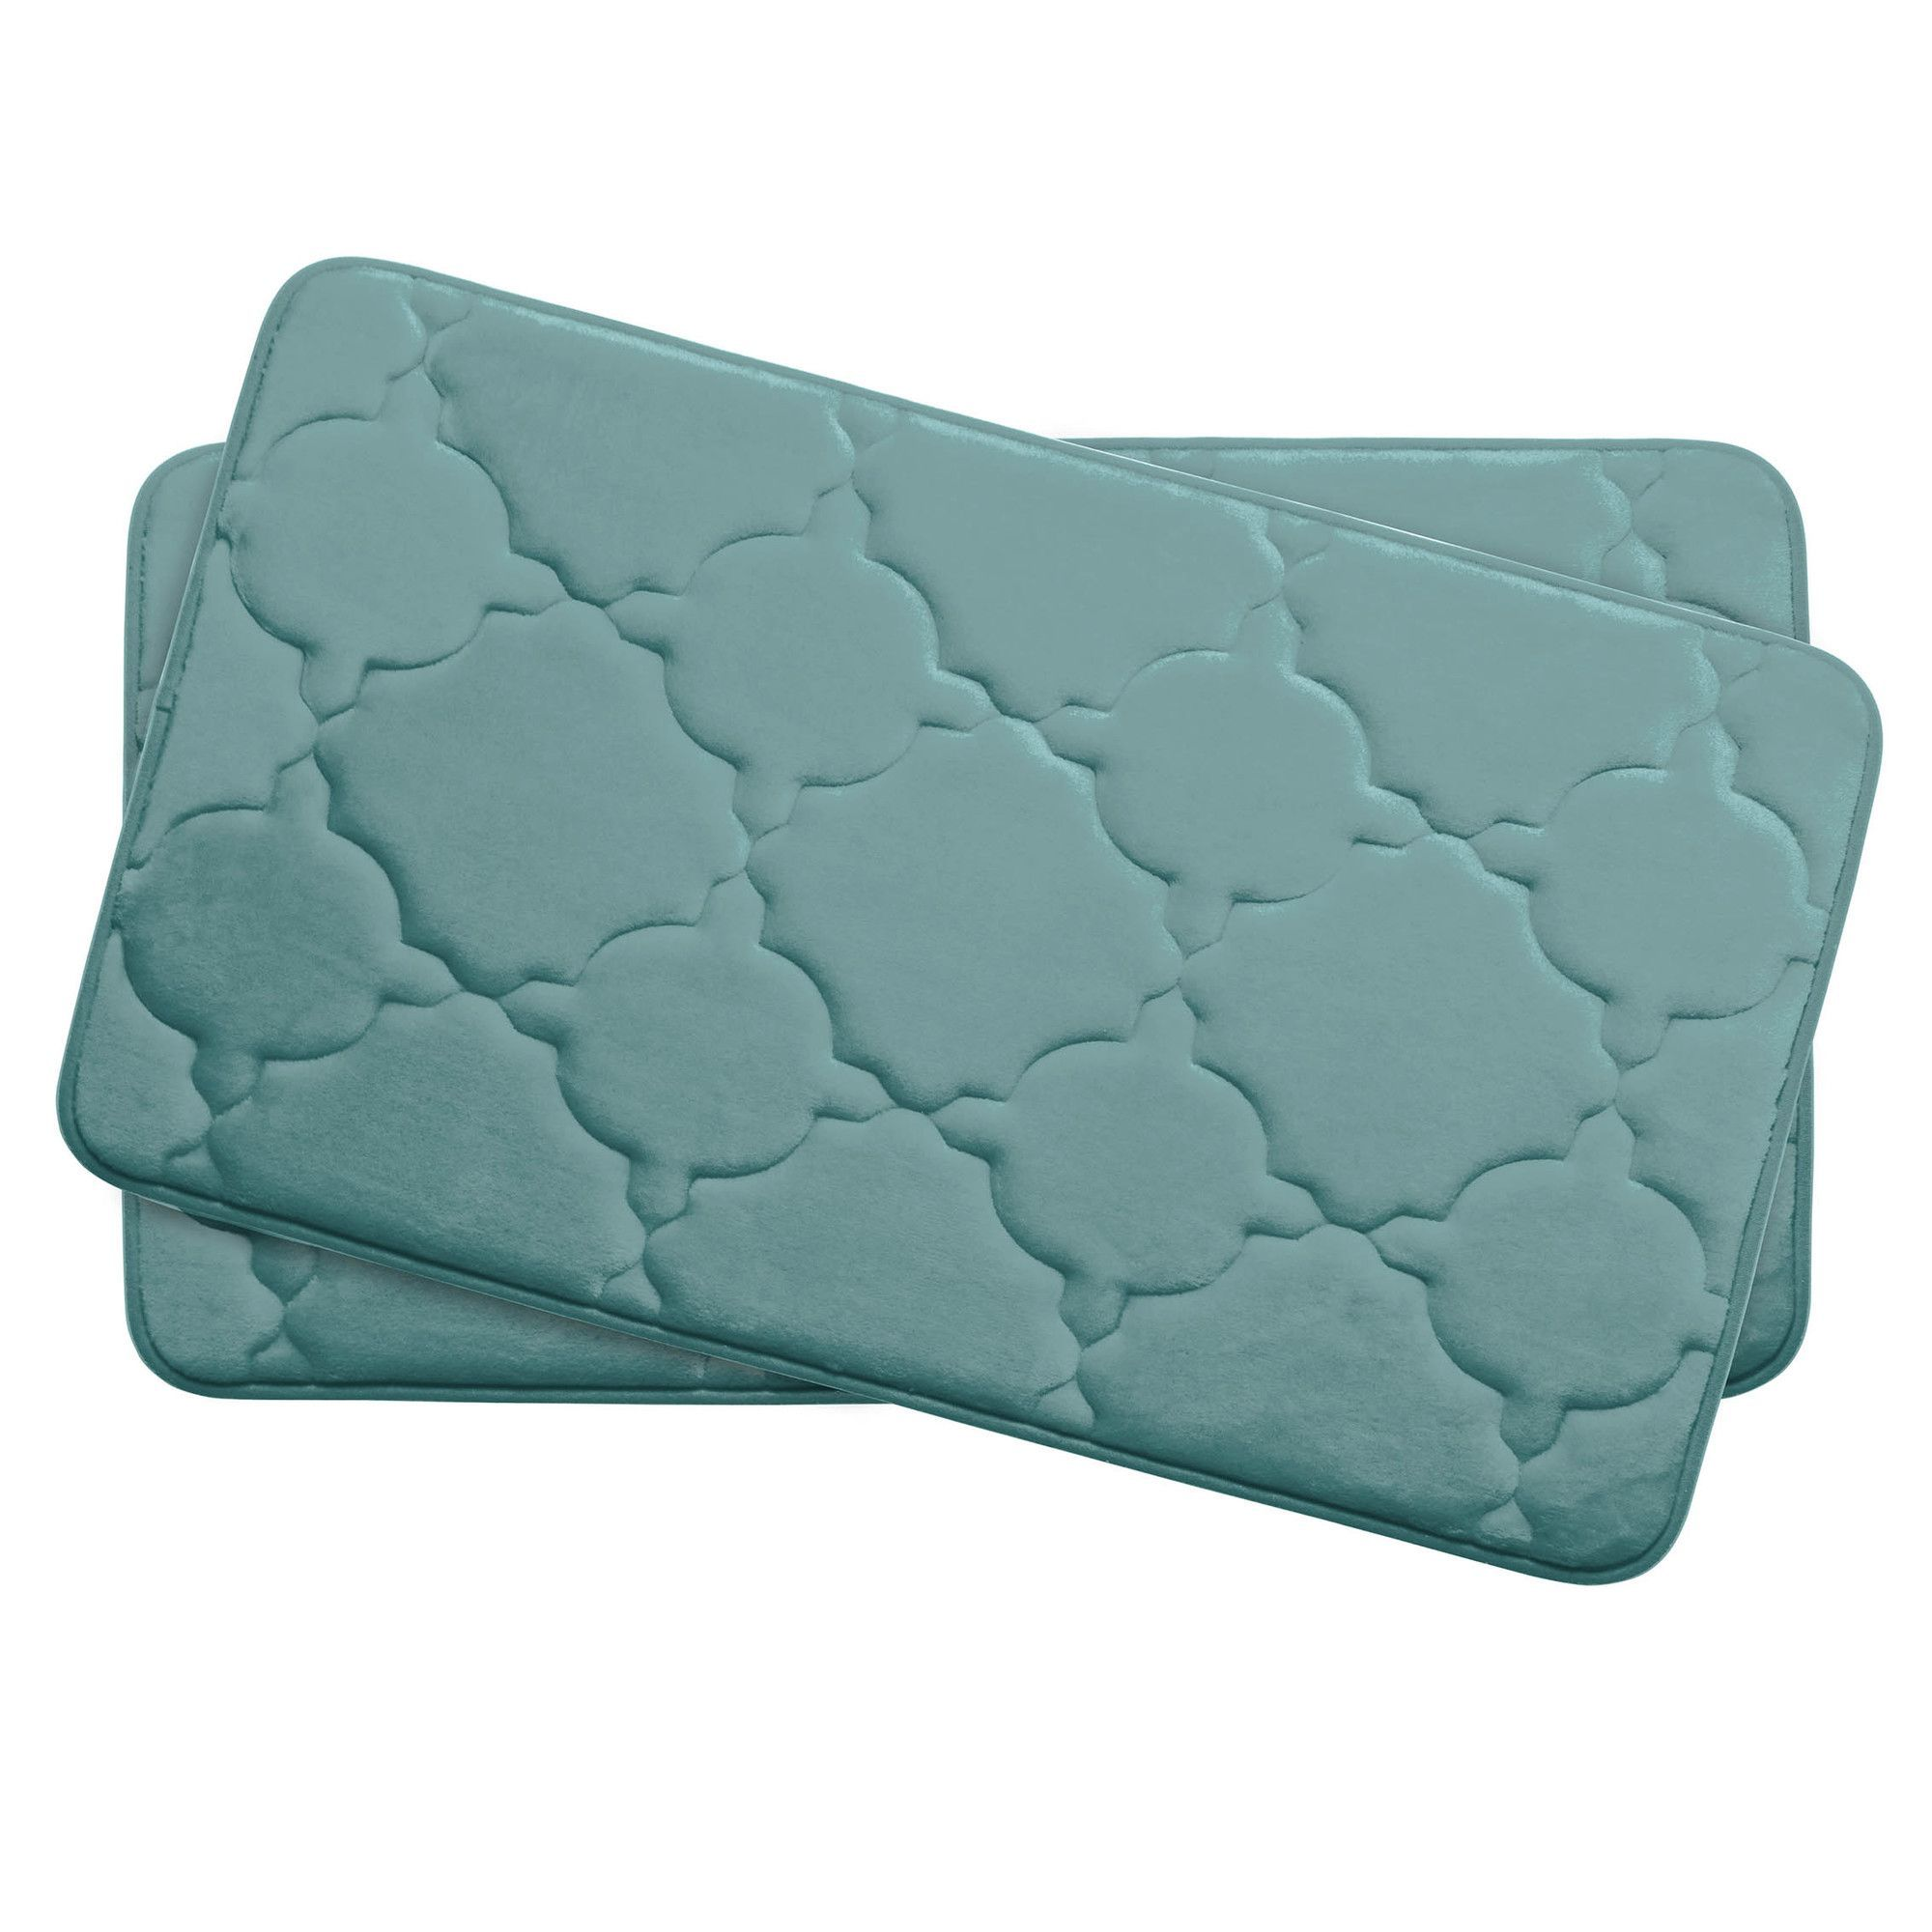 Dorothy Small 2 Piece Premium Micro Plush Memory Foam Bath Mat Set